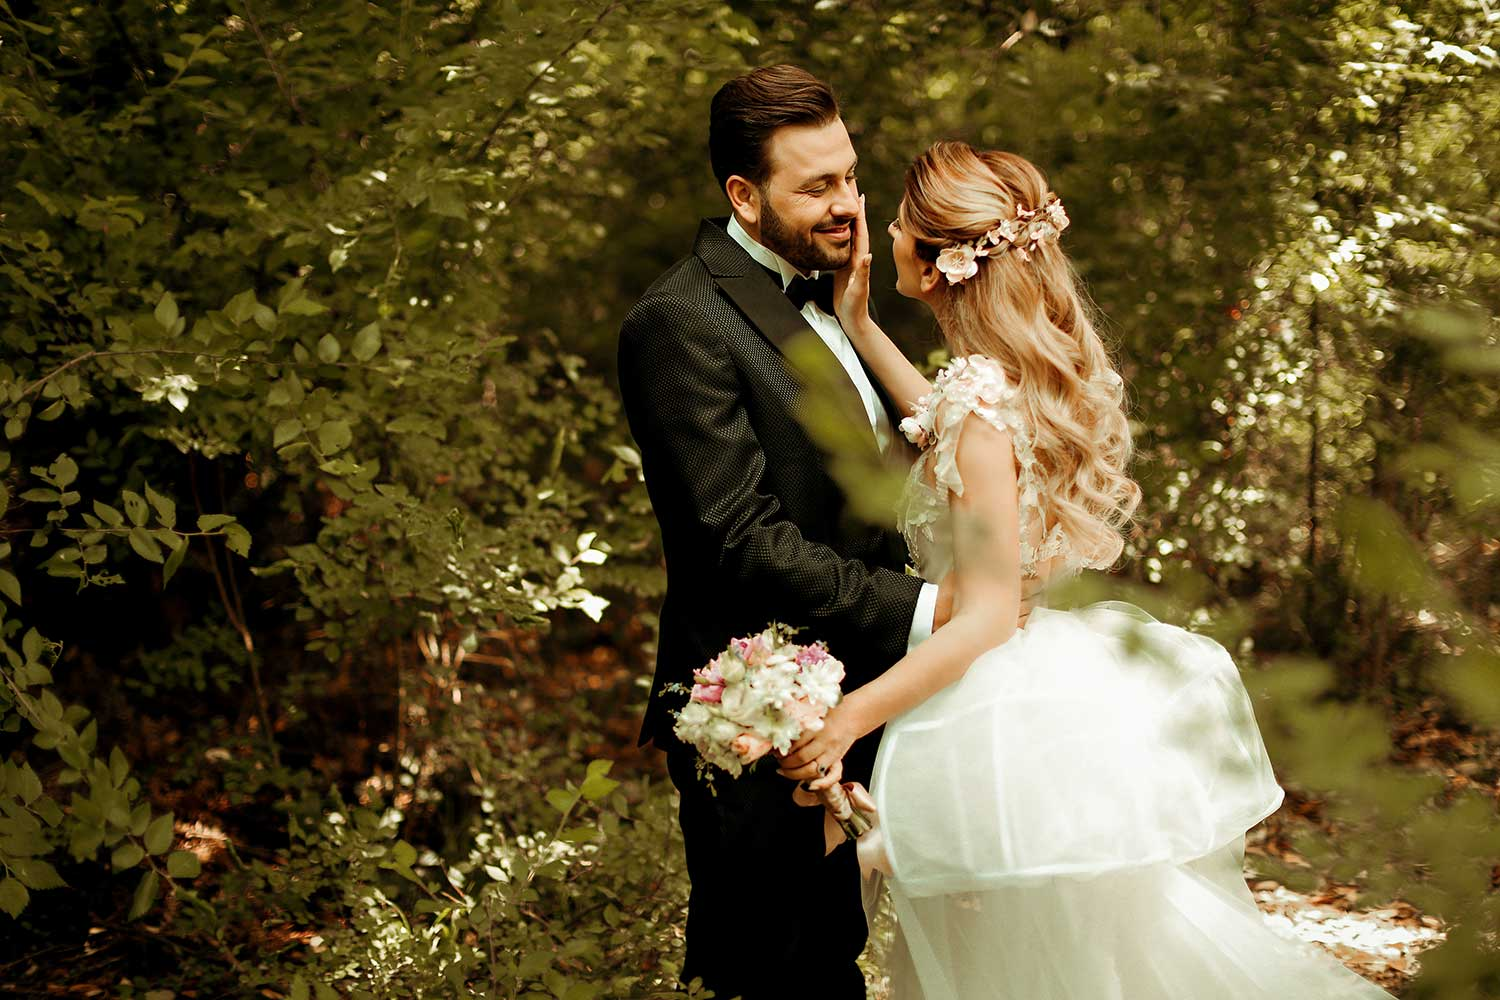 Capturing the love of the bride and groom